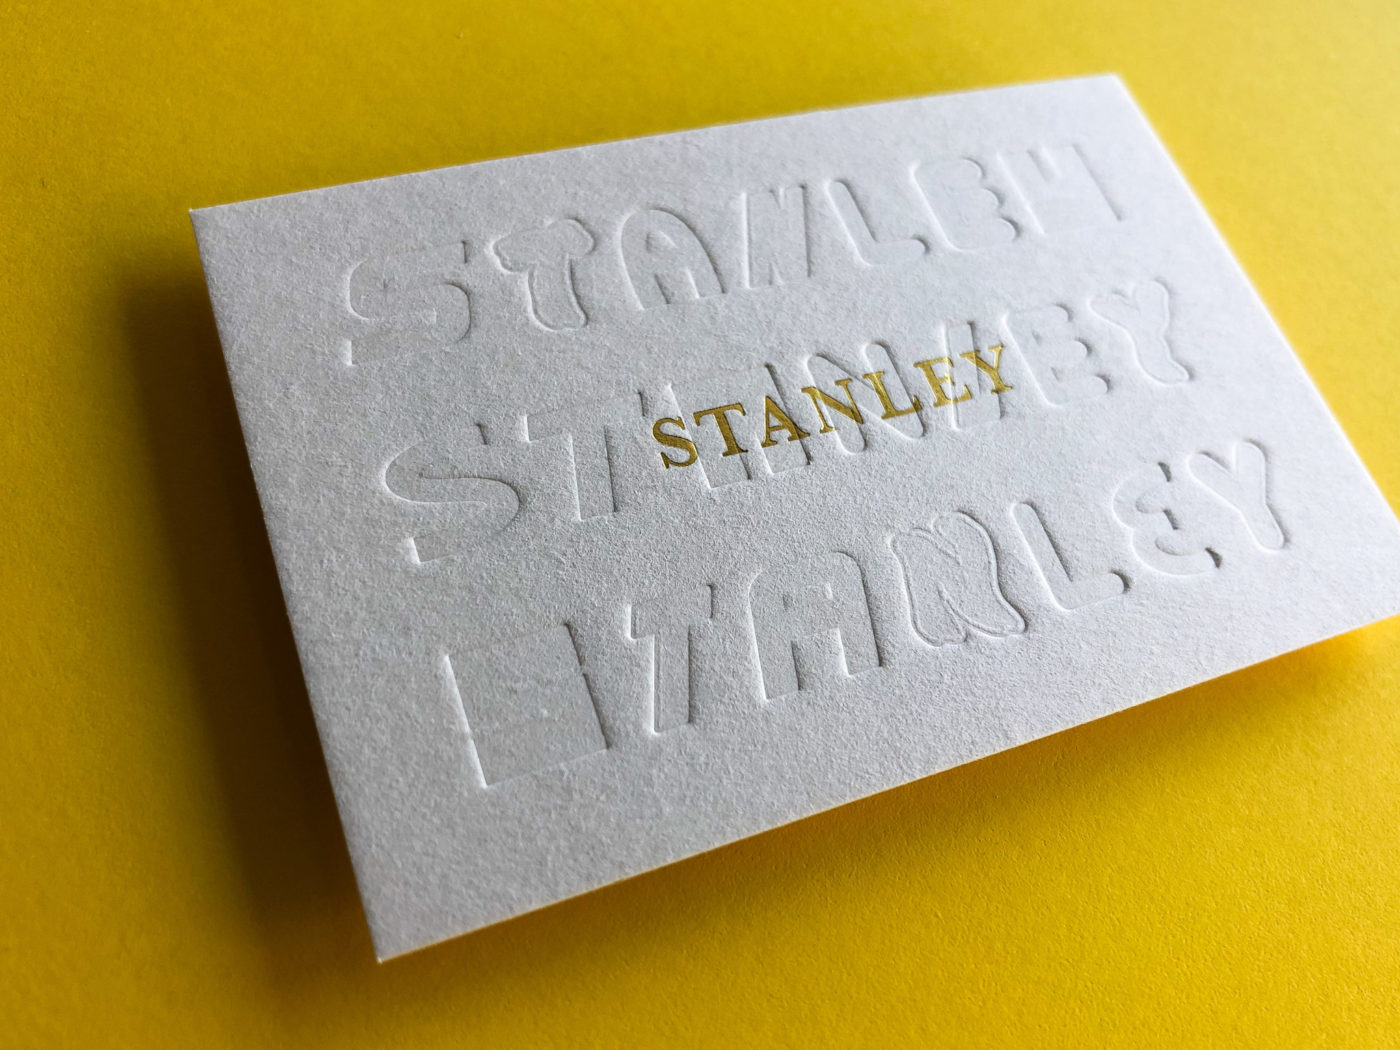 Gold Foil Letterpress Business Cards for Stanley on Beer Matt Board 1